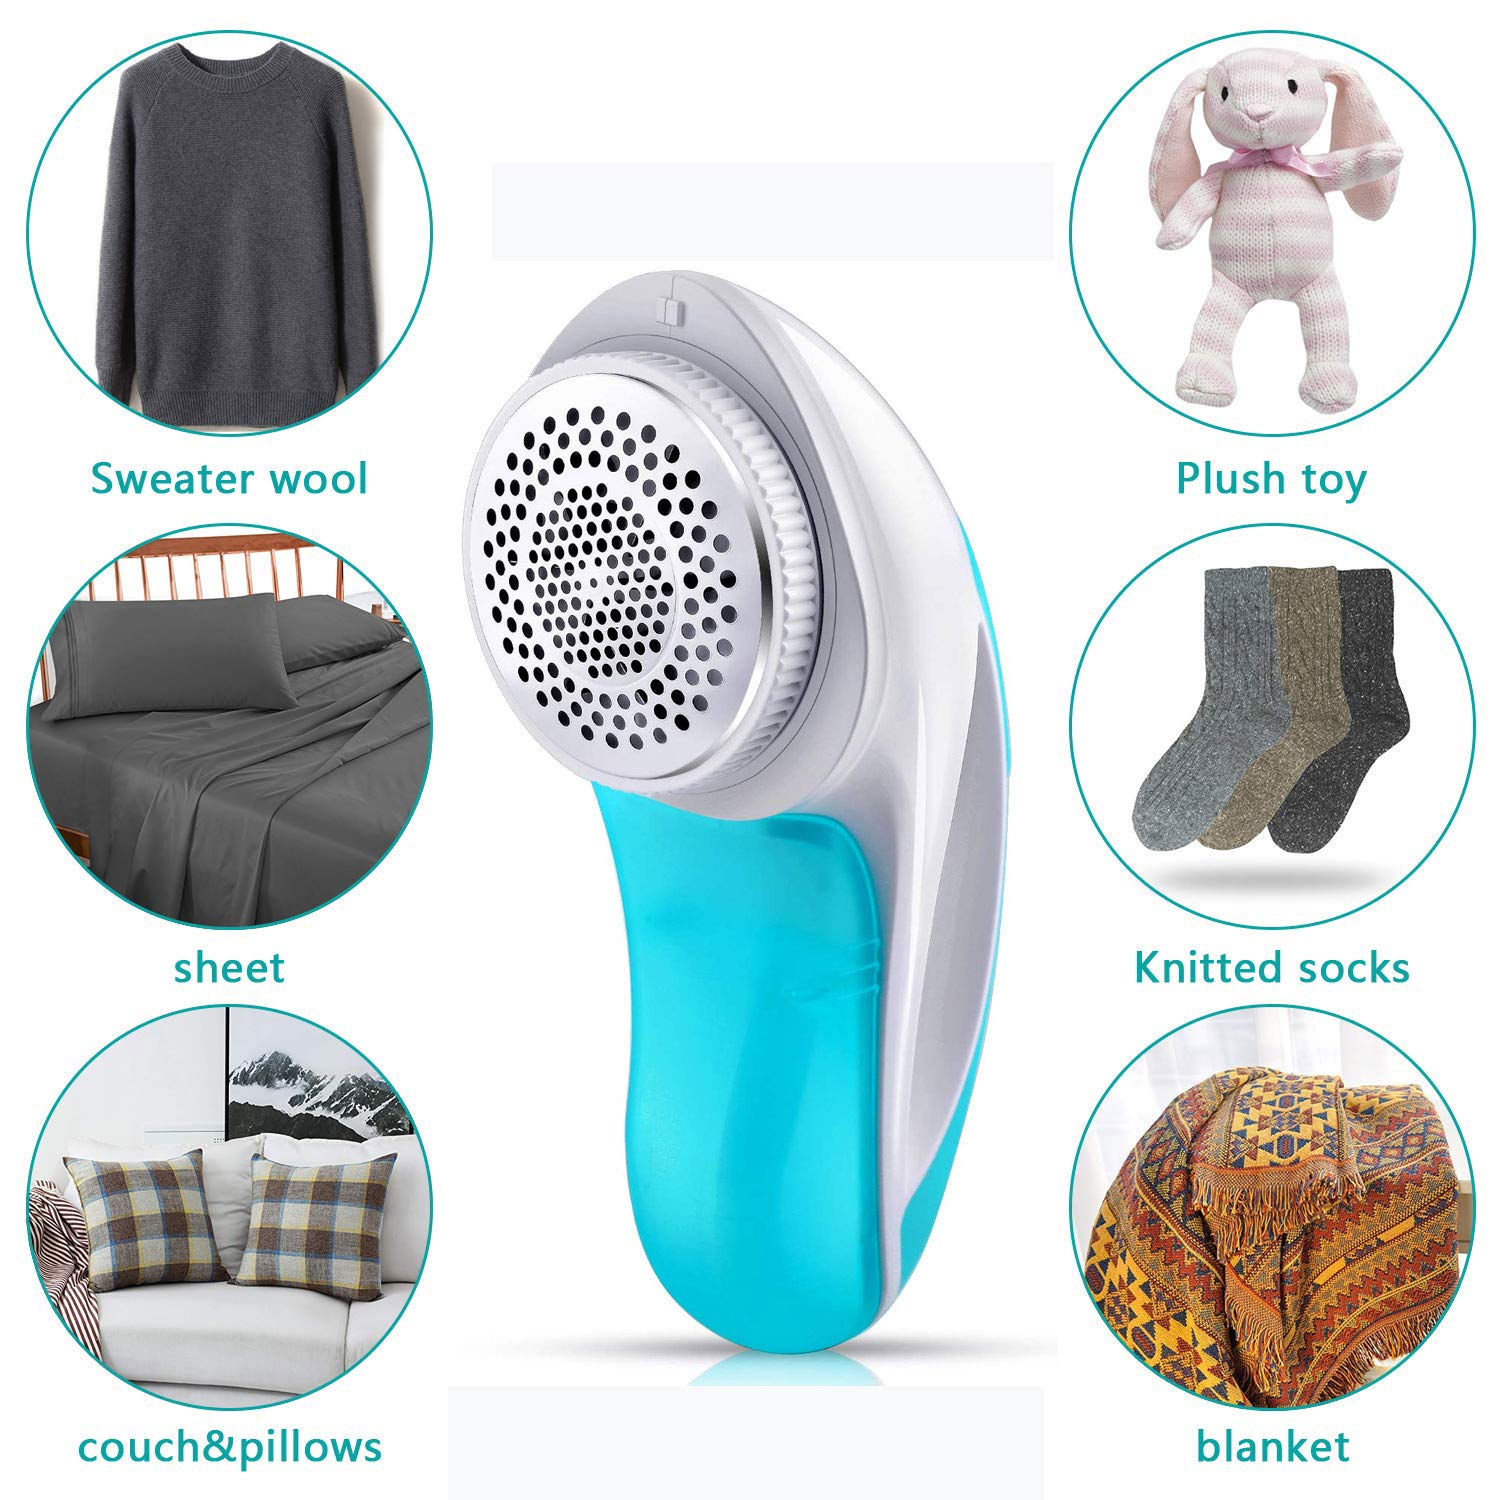 Fabric Shaver - Lint Remover - Electric Sweater Shaver - High Speed Portable, Quickly and Effectively Remove Fuzz, Lint, Pills, Blanket, Socks, Legging, Curtain, Professional USB Rechargeable by HSelar (Image #2)